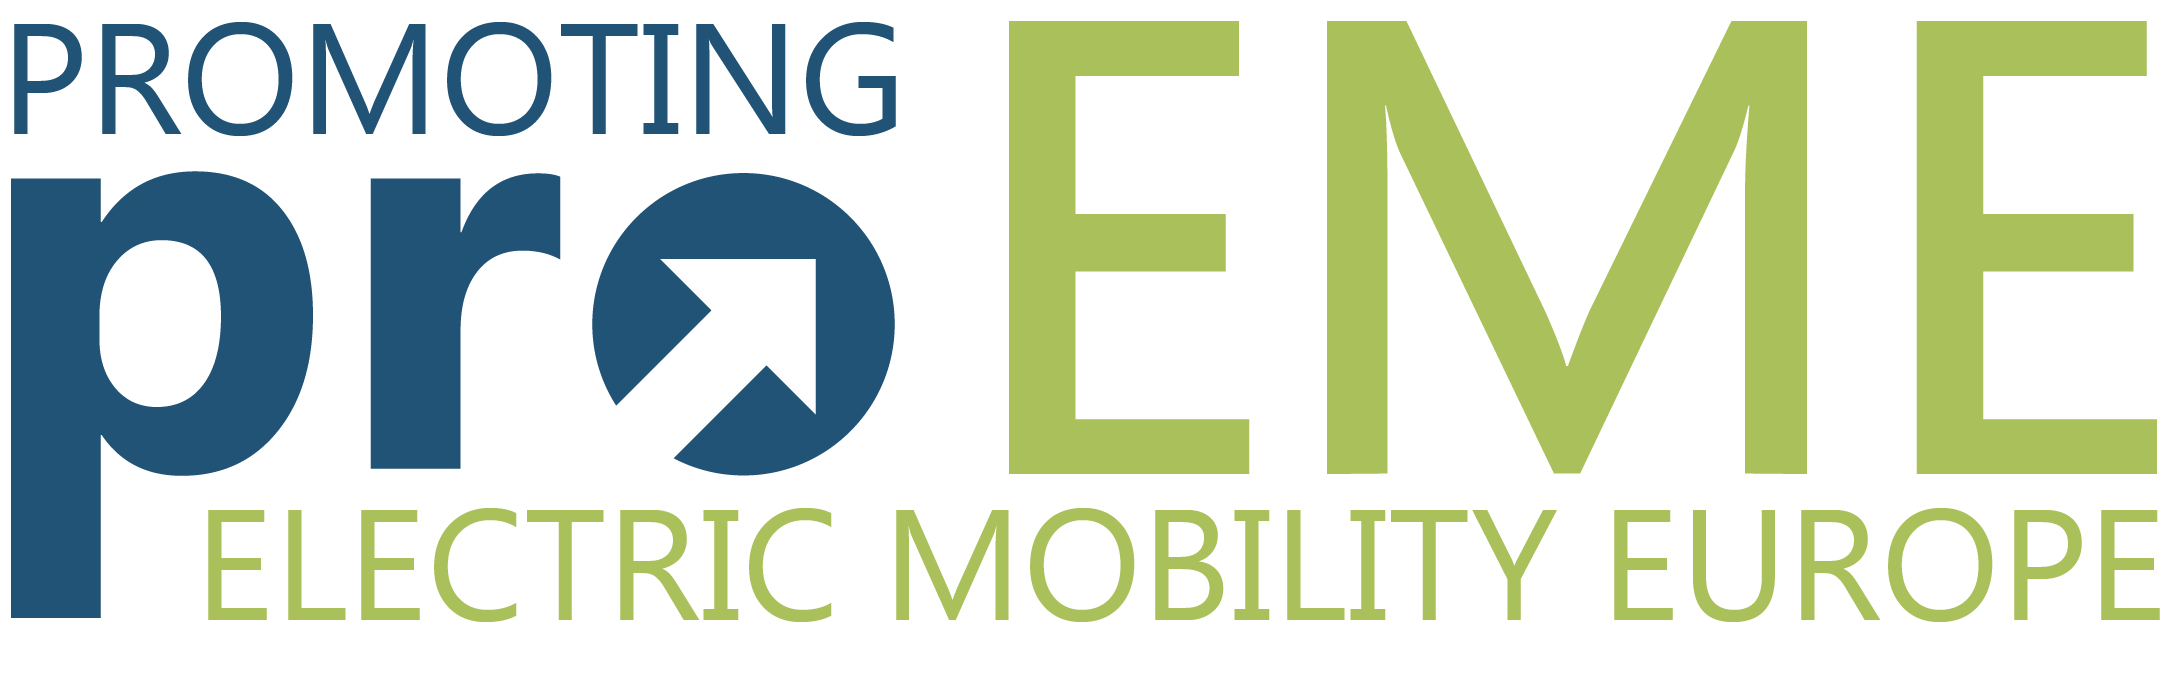 Projects Electric Mobility Europe Club Car Troubleshooting Guide Proeme Promoting